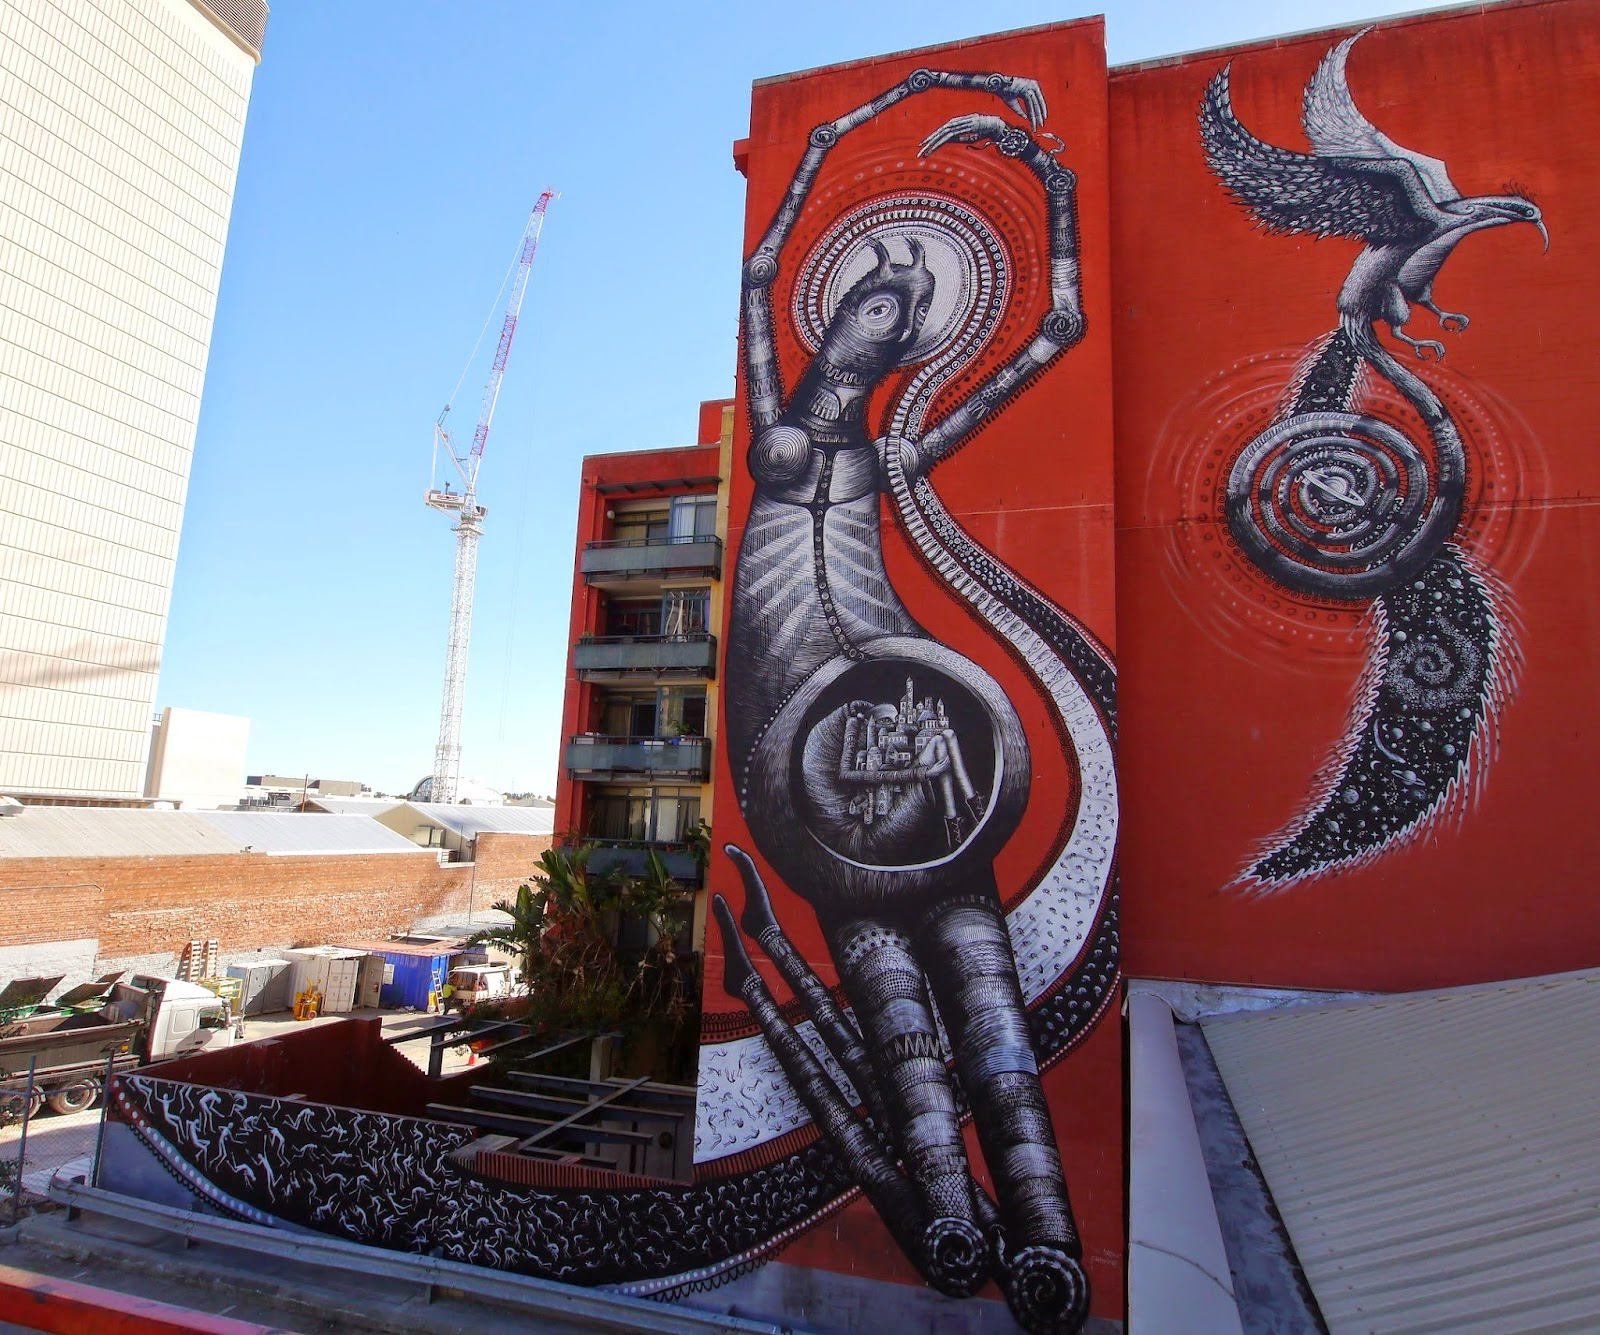 Last seen in London last February (covered), Phlegm is now in Australia where he spent the last few days working on this monster piece.